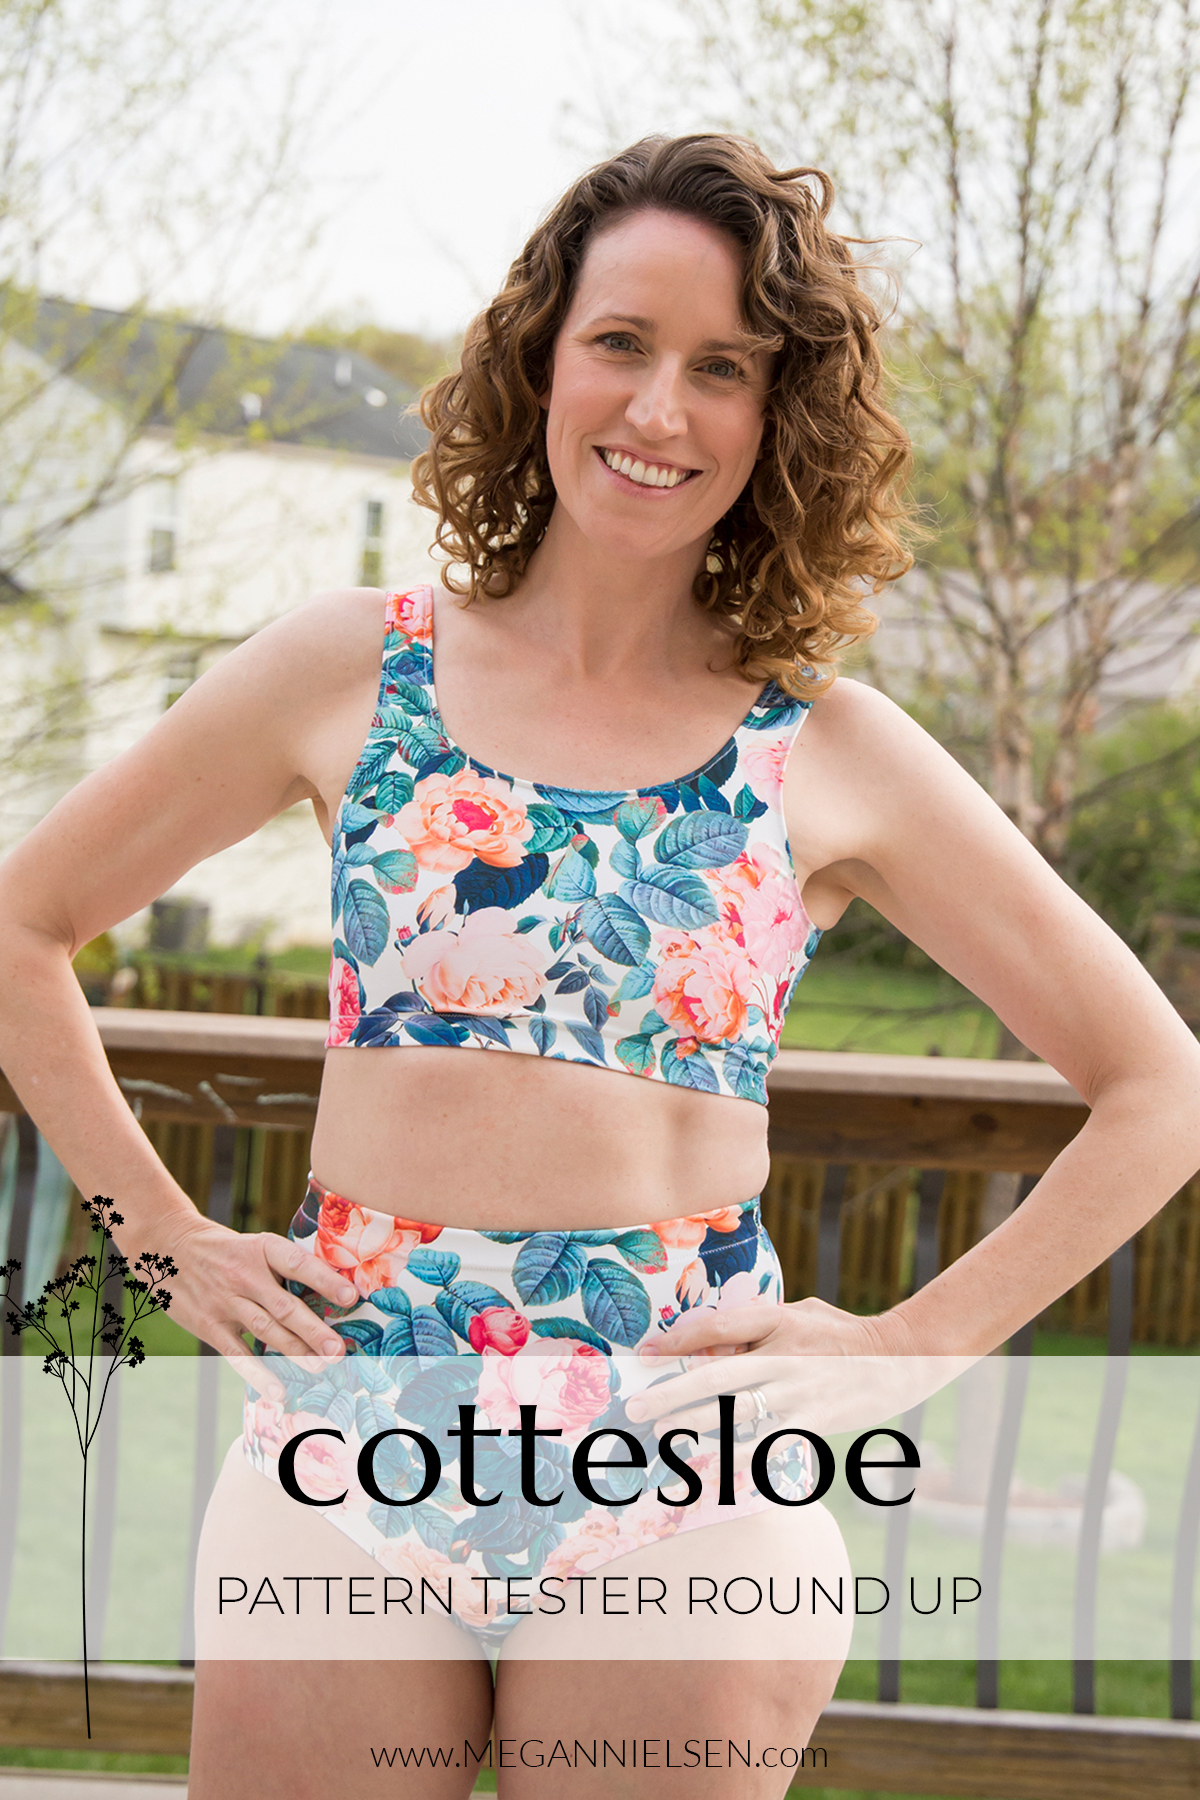 Cottesloe pattern tester round up